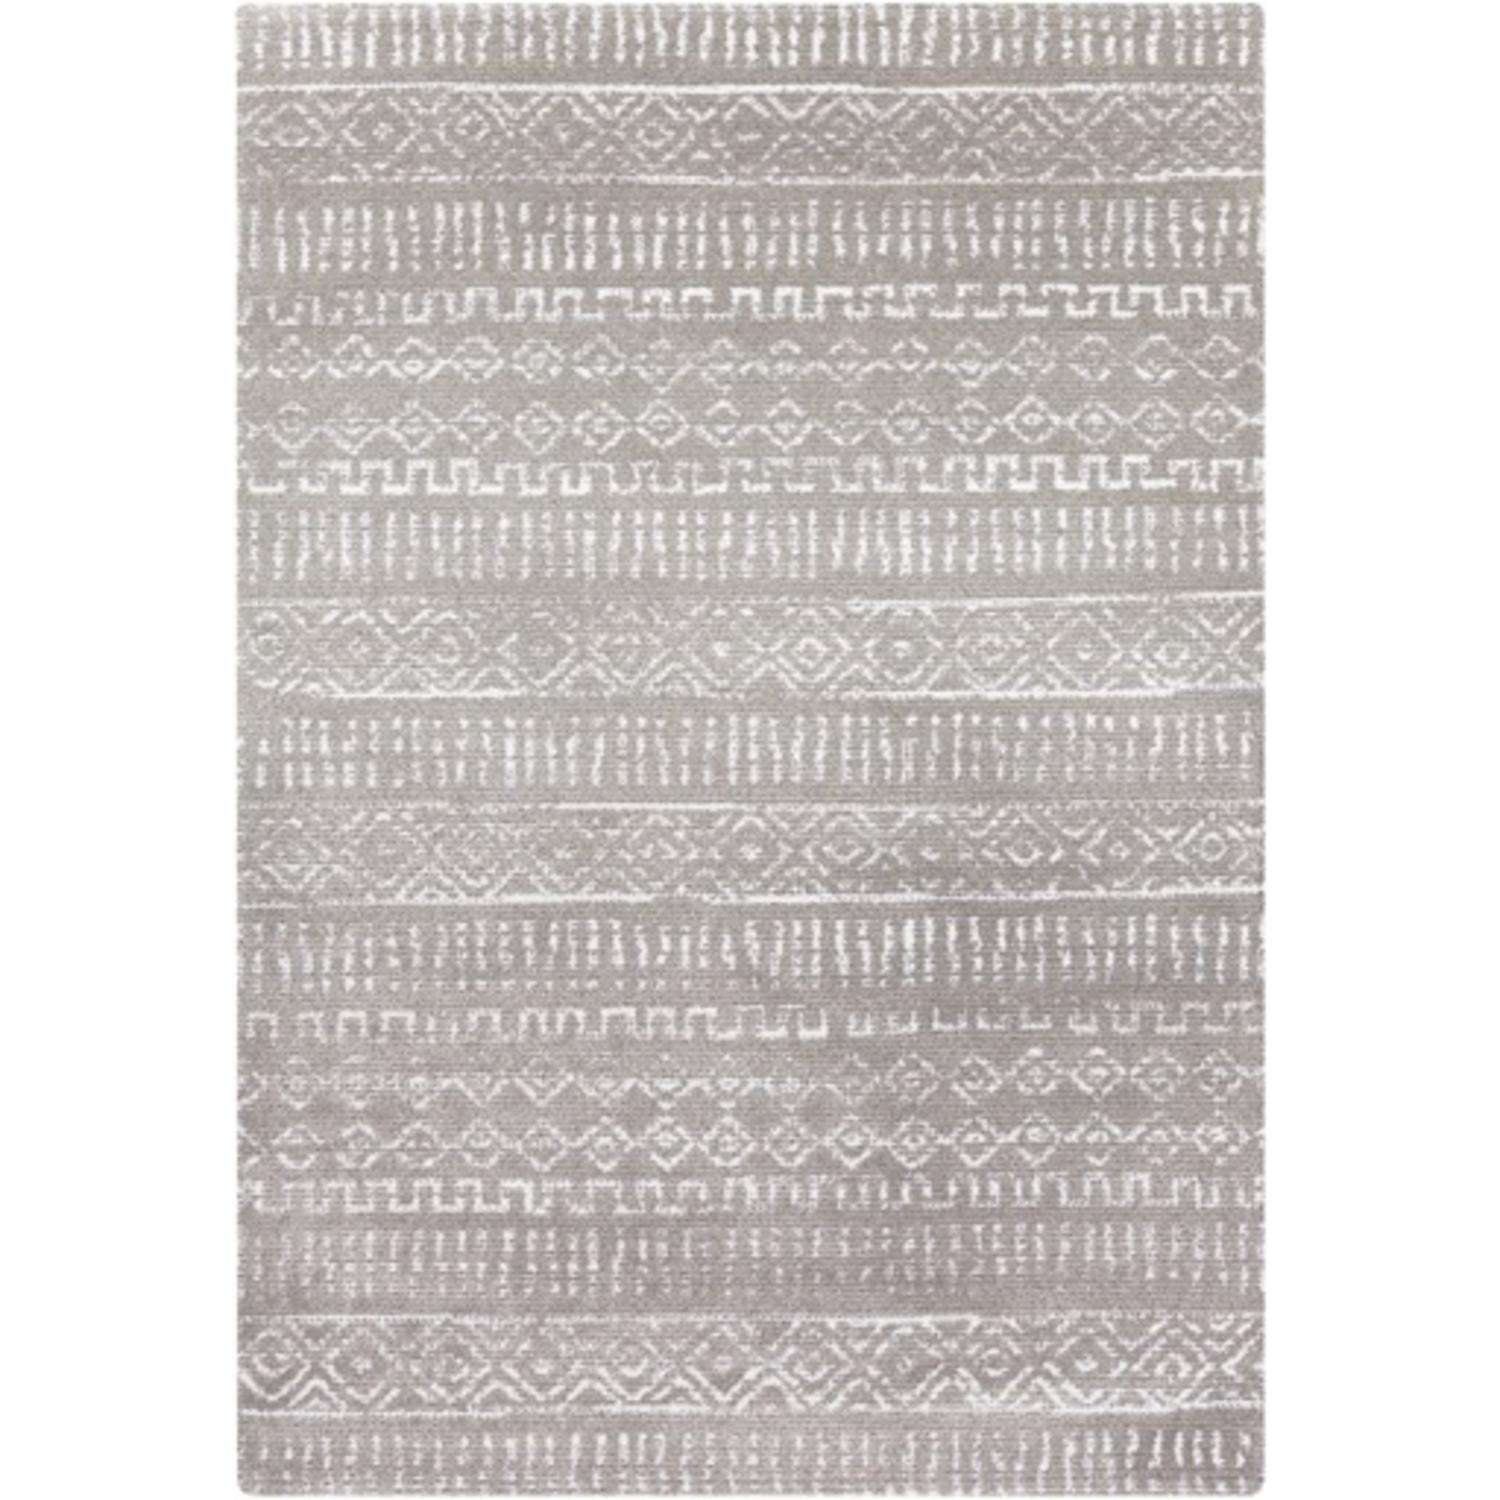 9' x 12' Ugly Sweater Slate Gray and Snow White Lustrous Sheen Area Throw Rug